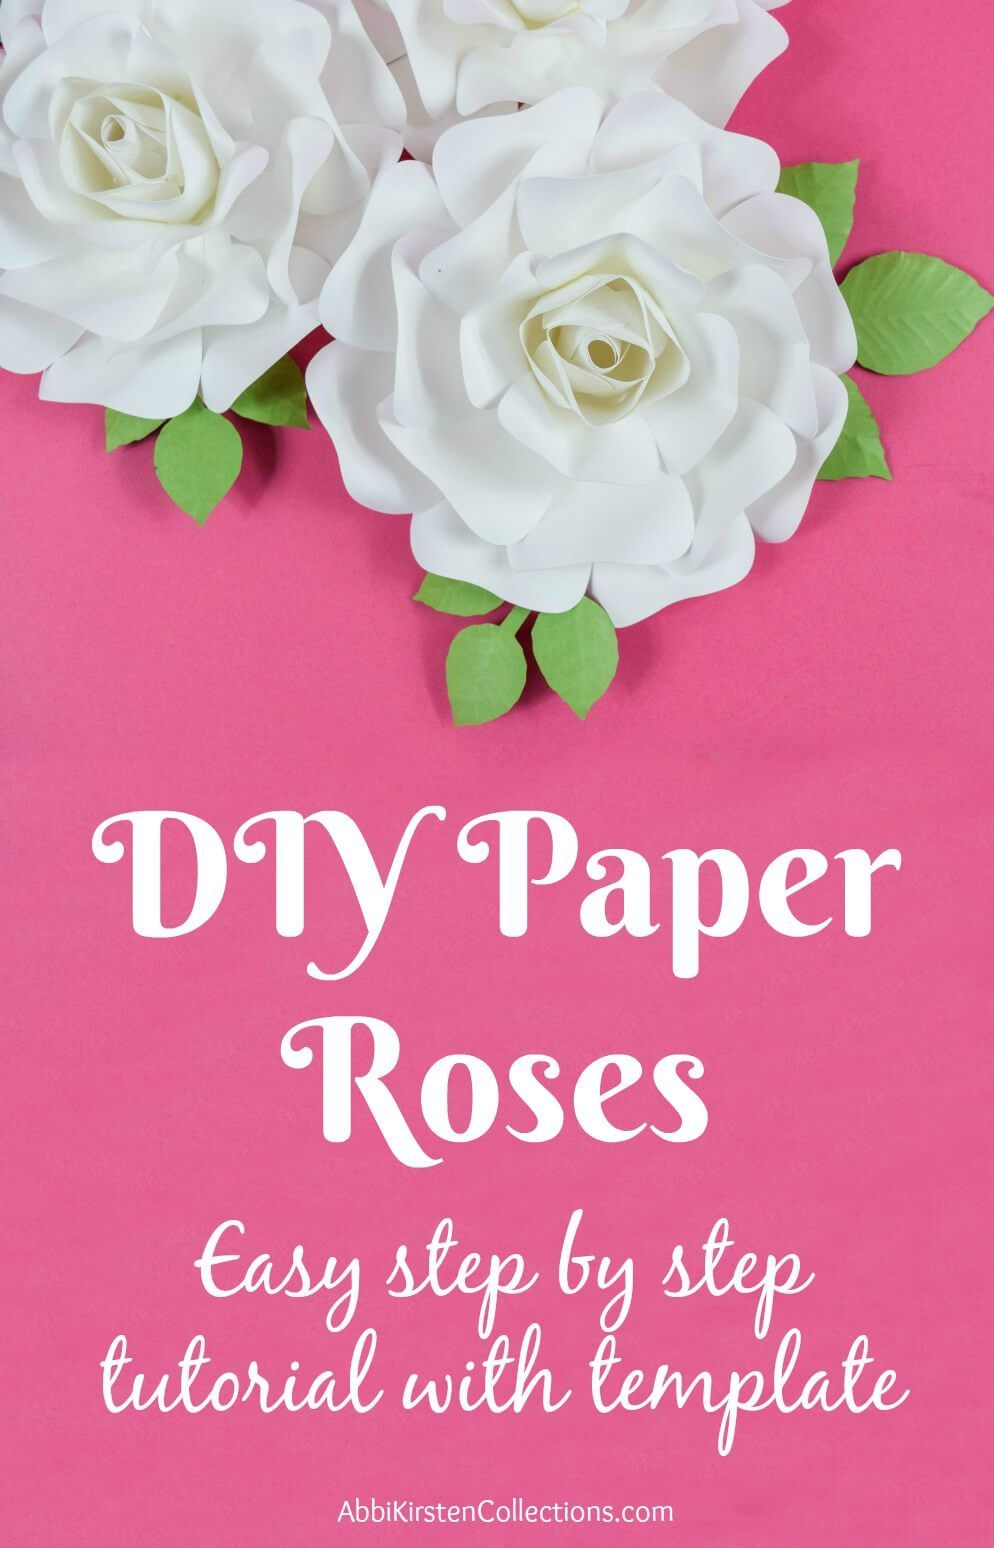 Diy Paper Rose Tutorial How To Make Small Paper Roses Share Your